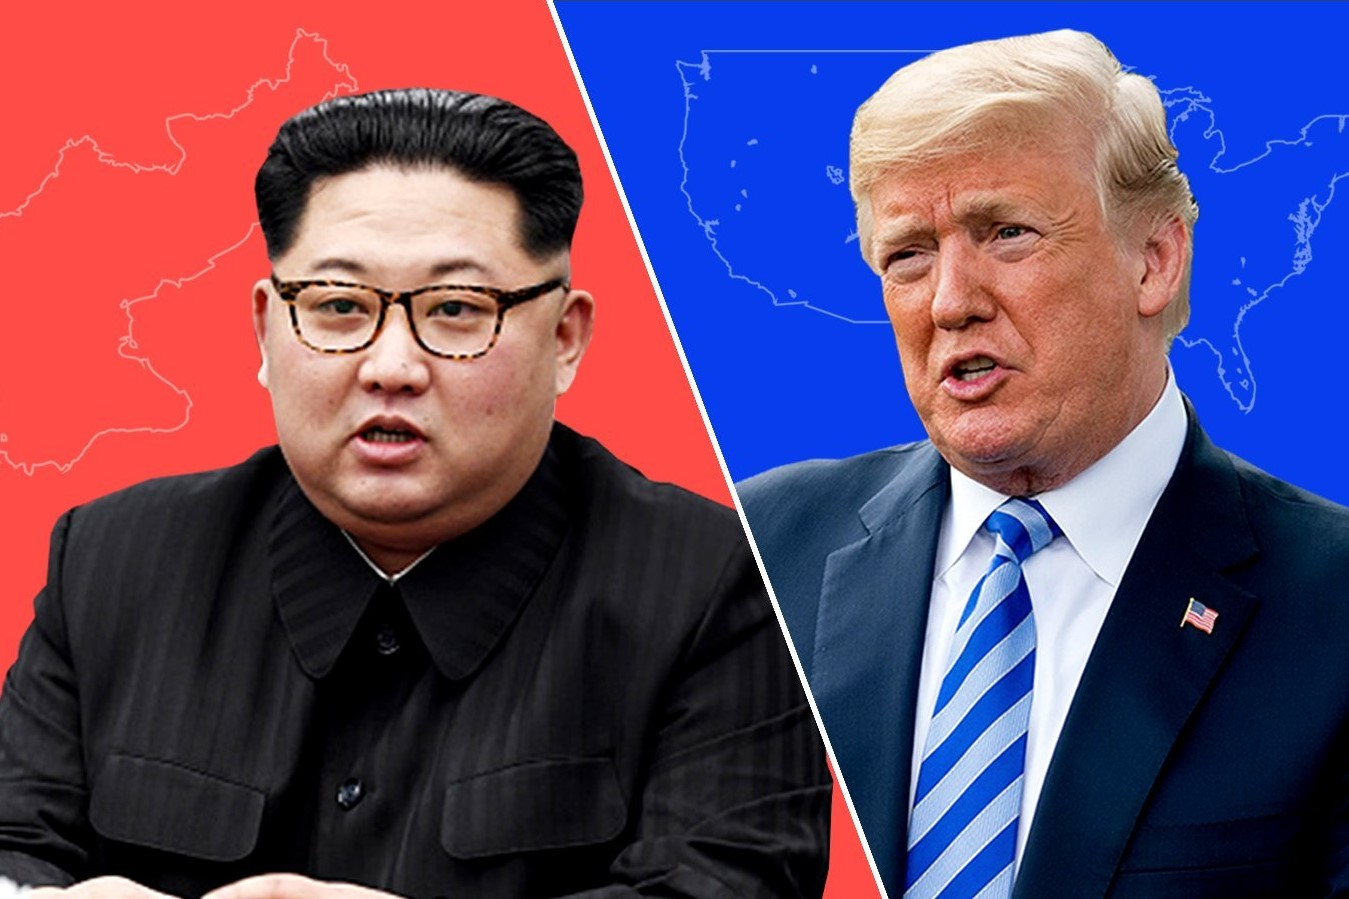 Will Trump and Kim set a new meeting?